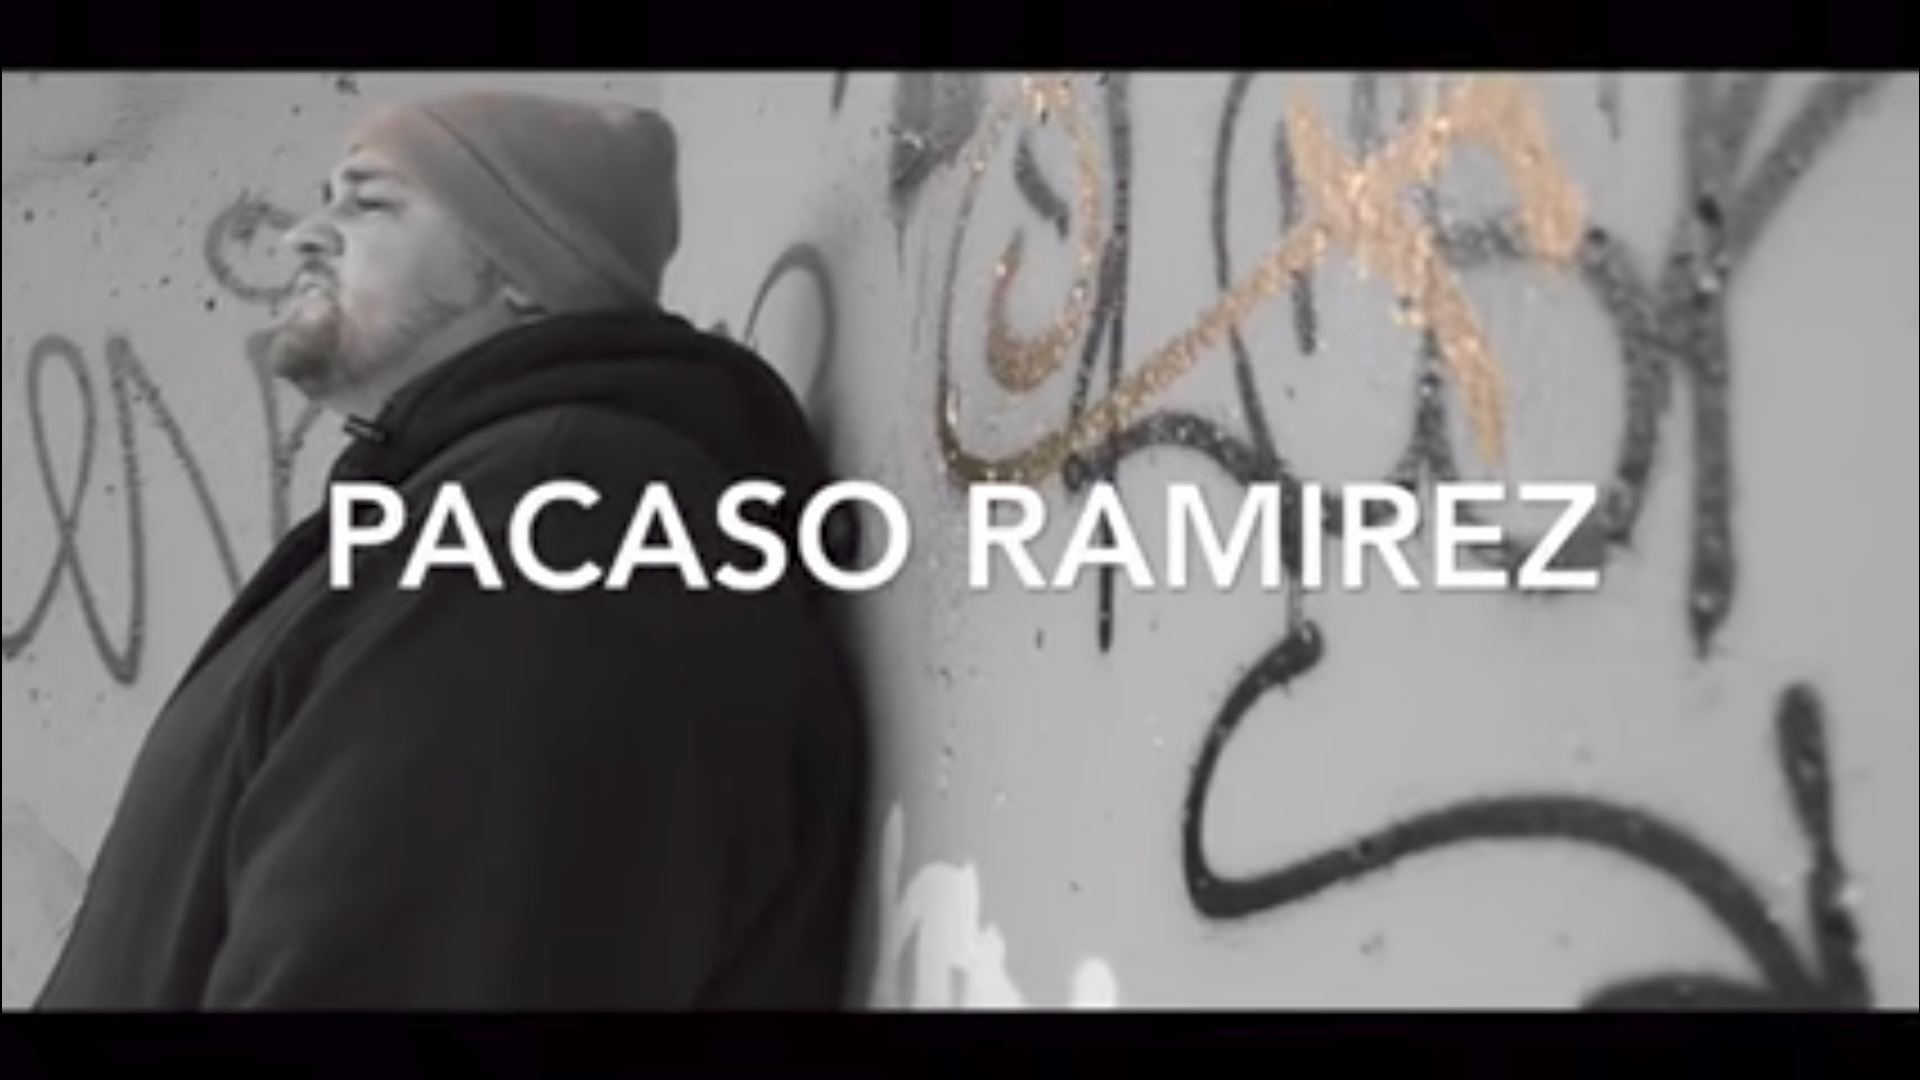 Golden Calf by Pacaso Ramirez [TEASER]